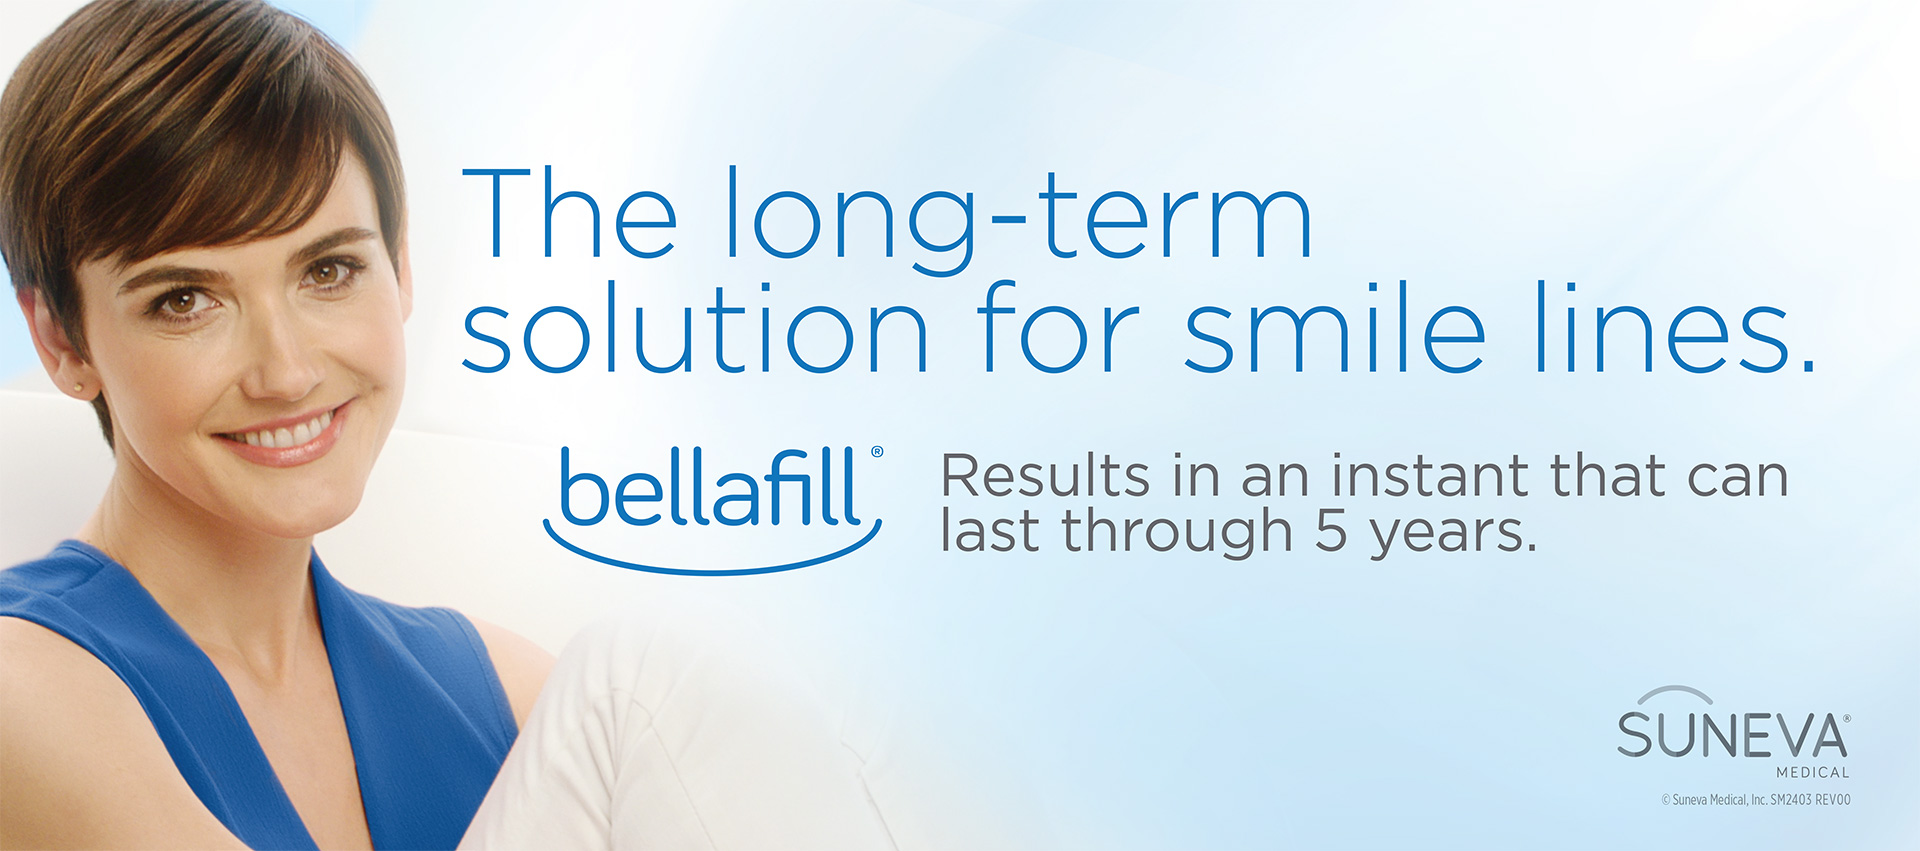 Bellafill® for Nasolabial Folds